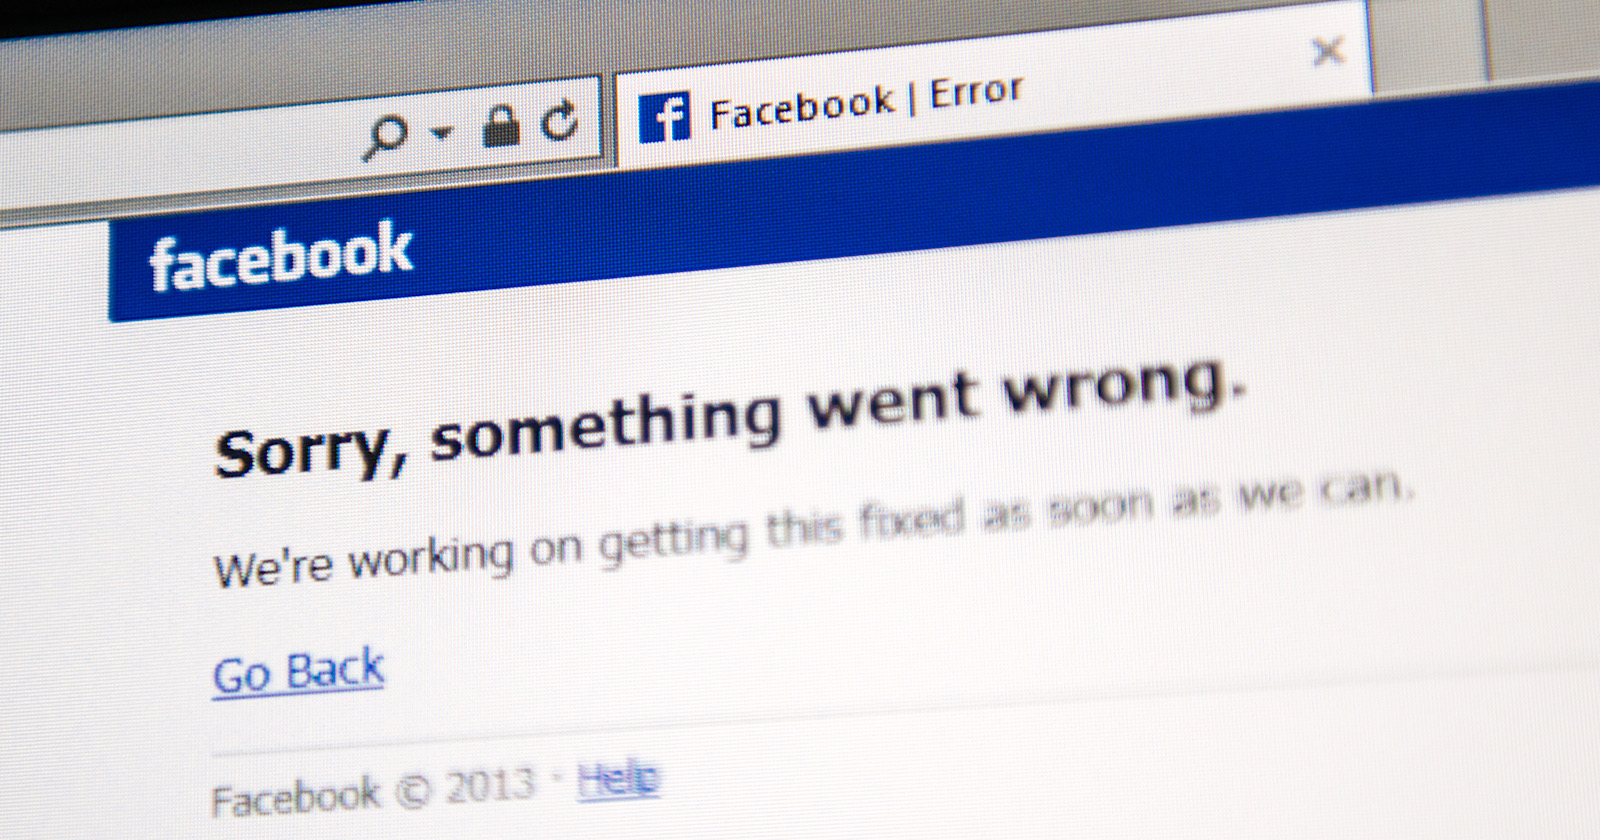 facebook-and-instagram-go-down-across-the-world-on-thanksgiving-day-via-@mattgsouthern